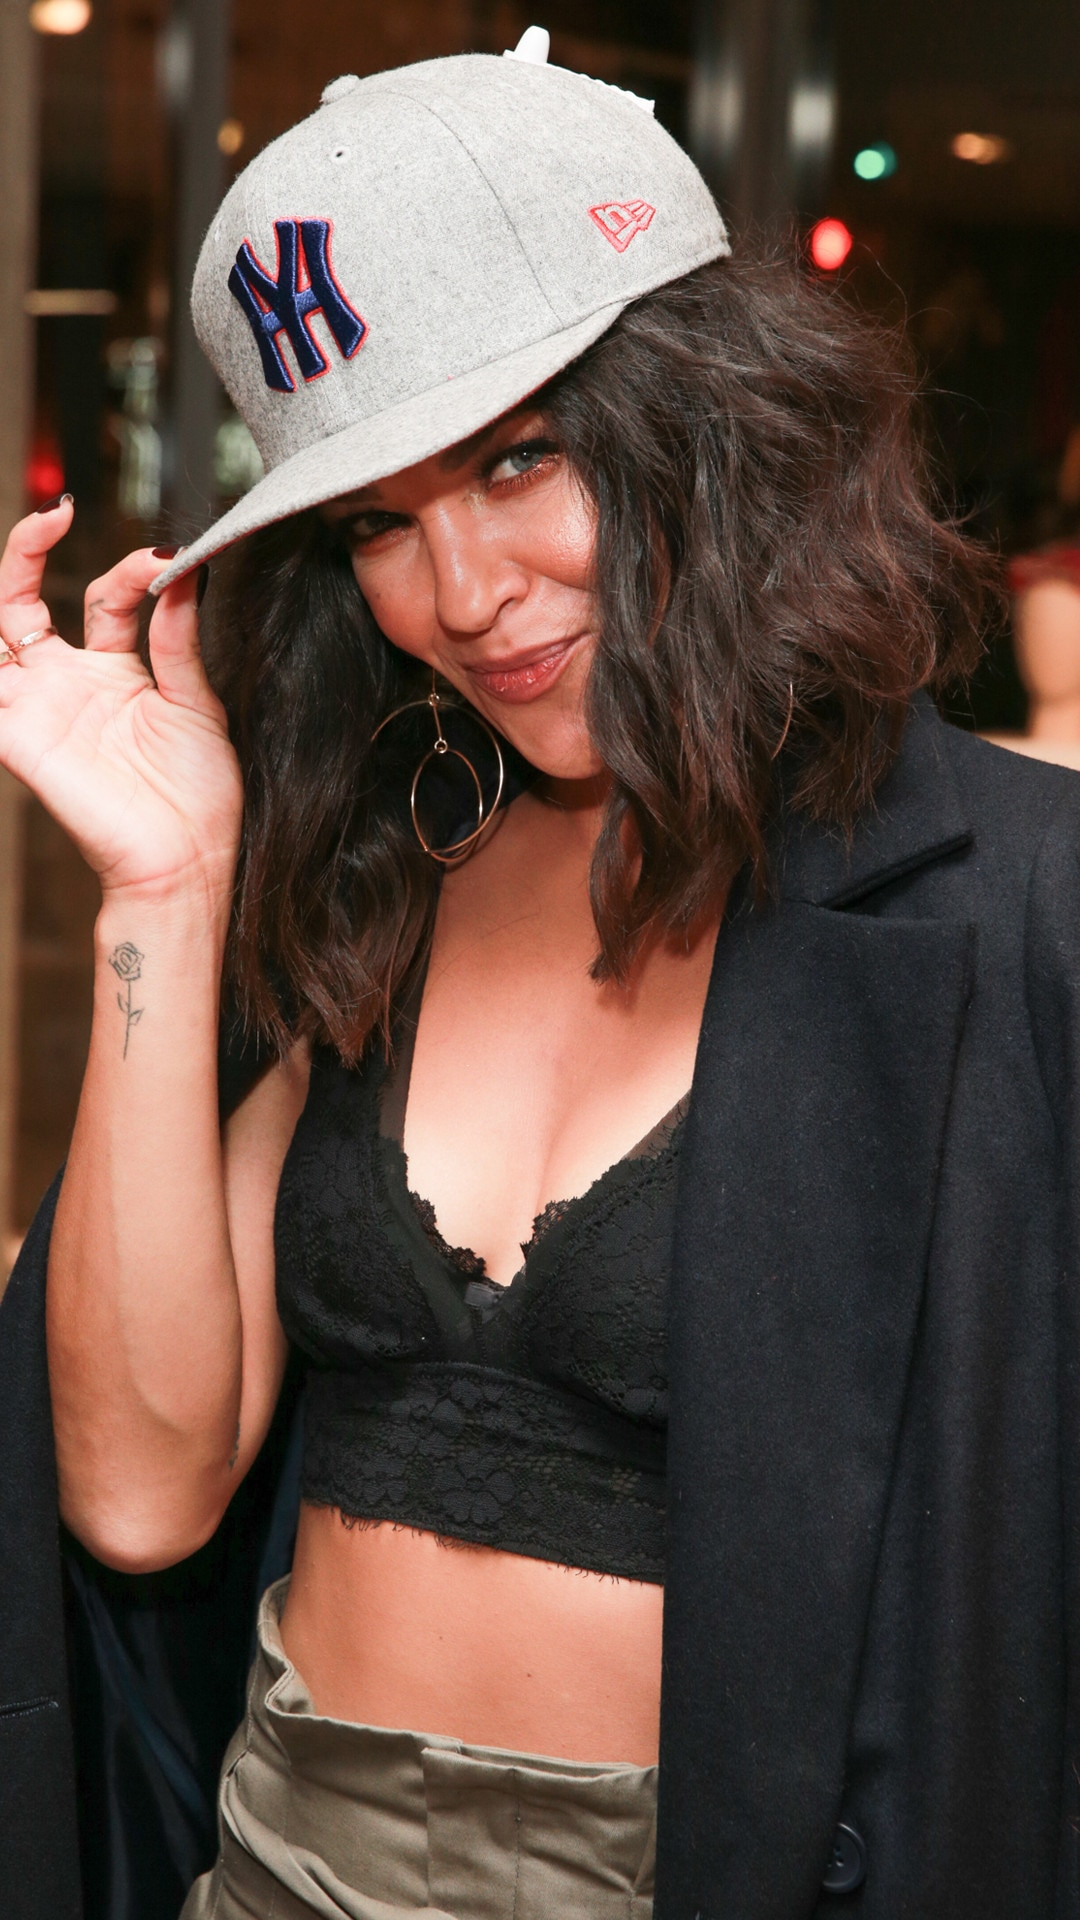 Jessica Szohr -  The  Gossip Girl  star celebrates the New Era cap sunset collection launch at Fred Segal Sunset pop up shop in Los Angeles.